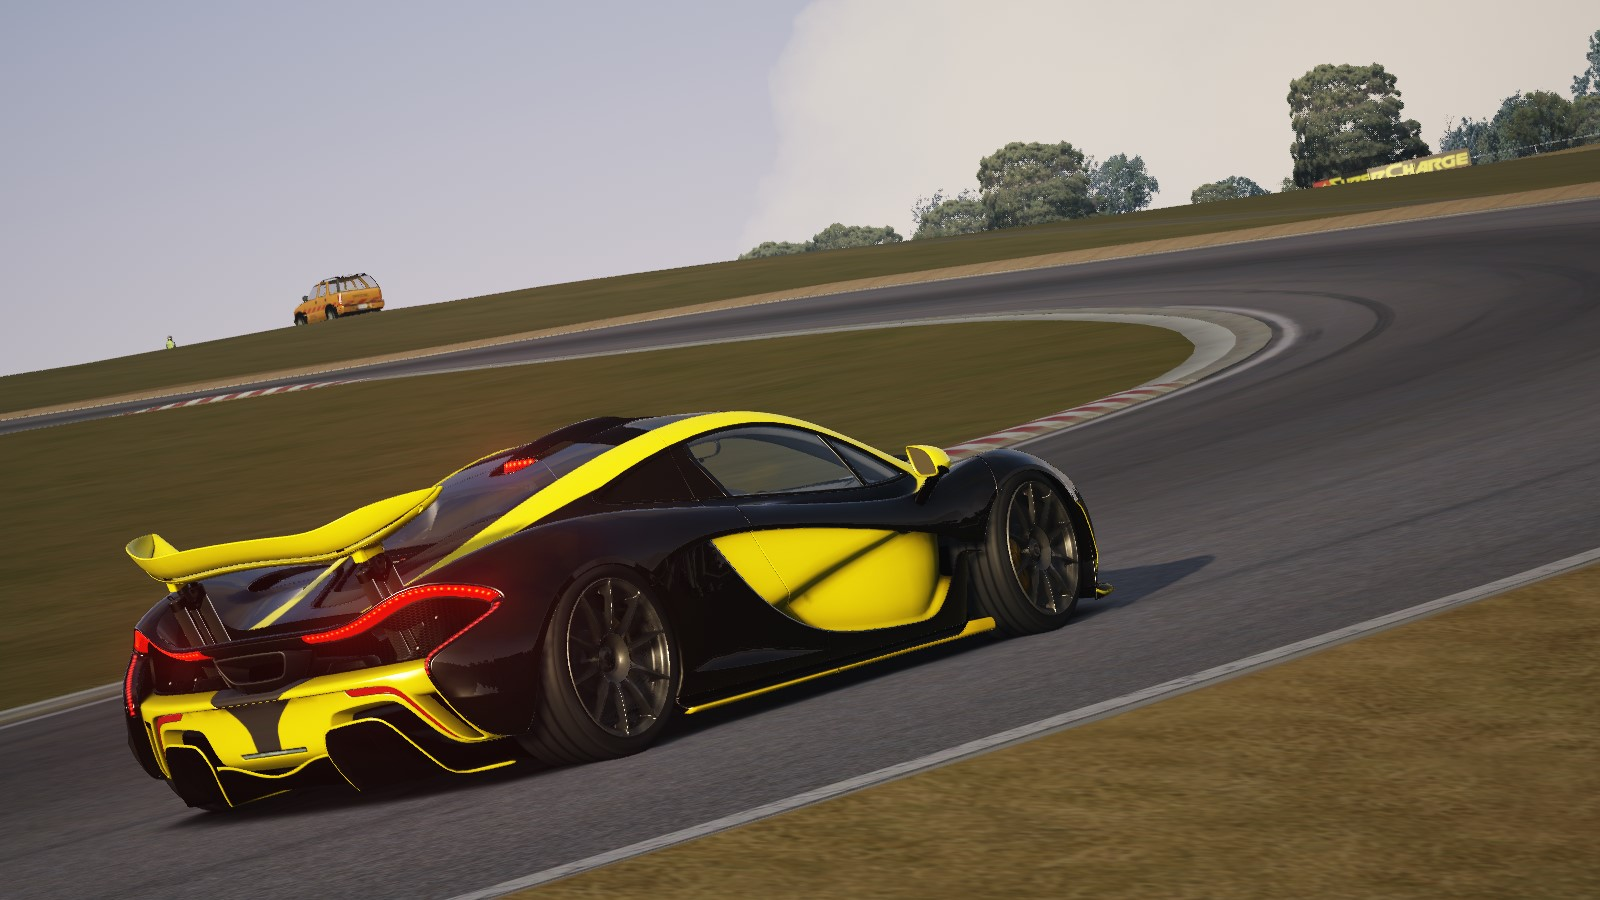 Screenshot_ks_mclaren_p1_barbagallo_9-9-115-2-28-56.jpg